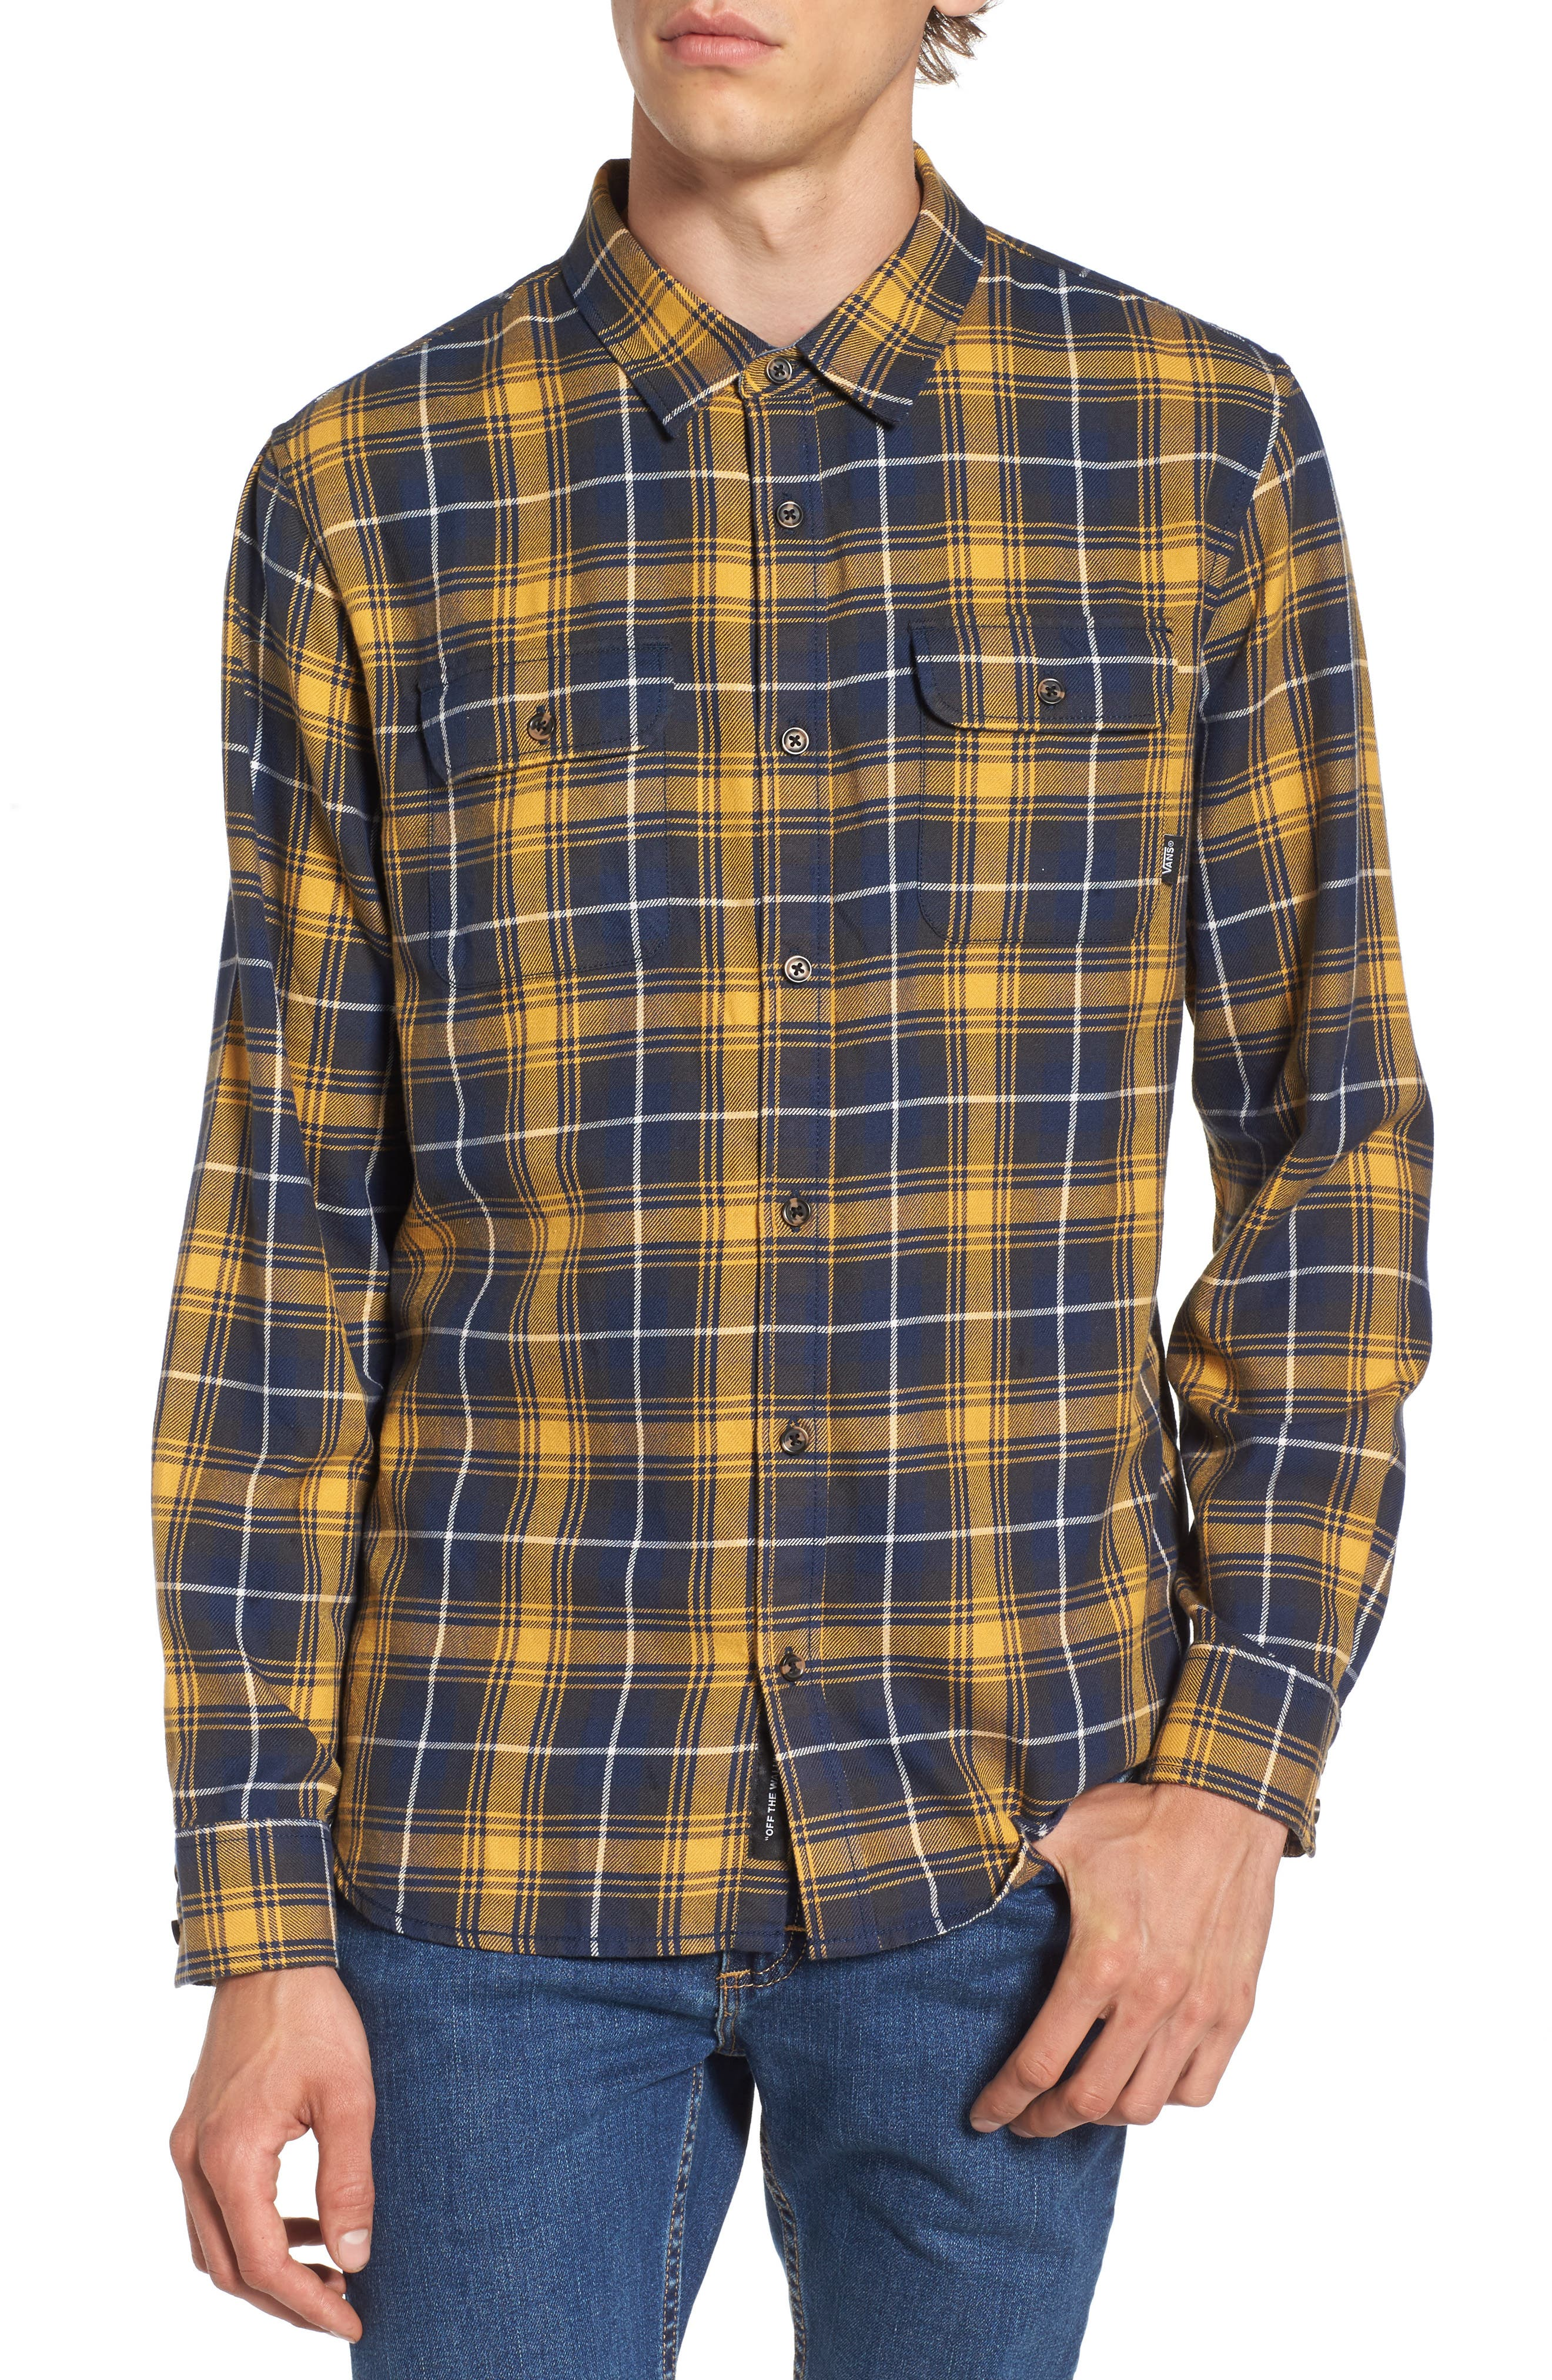 Alternate Image 1 Selected - Vans Sycamore Plaid Flannel Sport Shirt